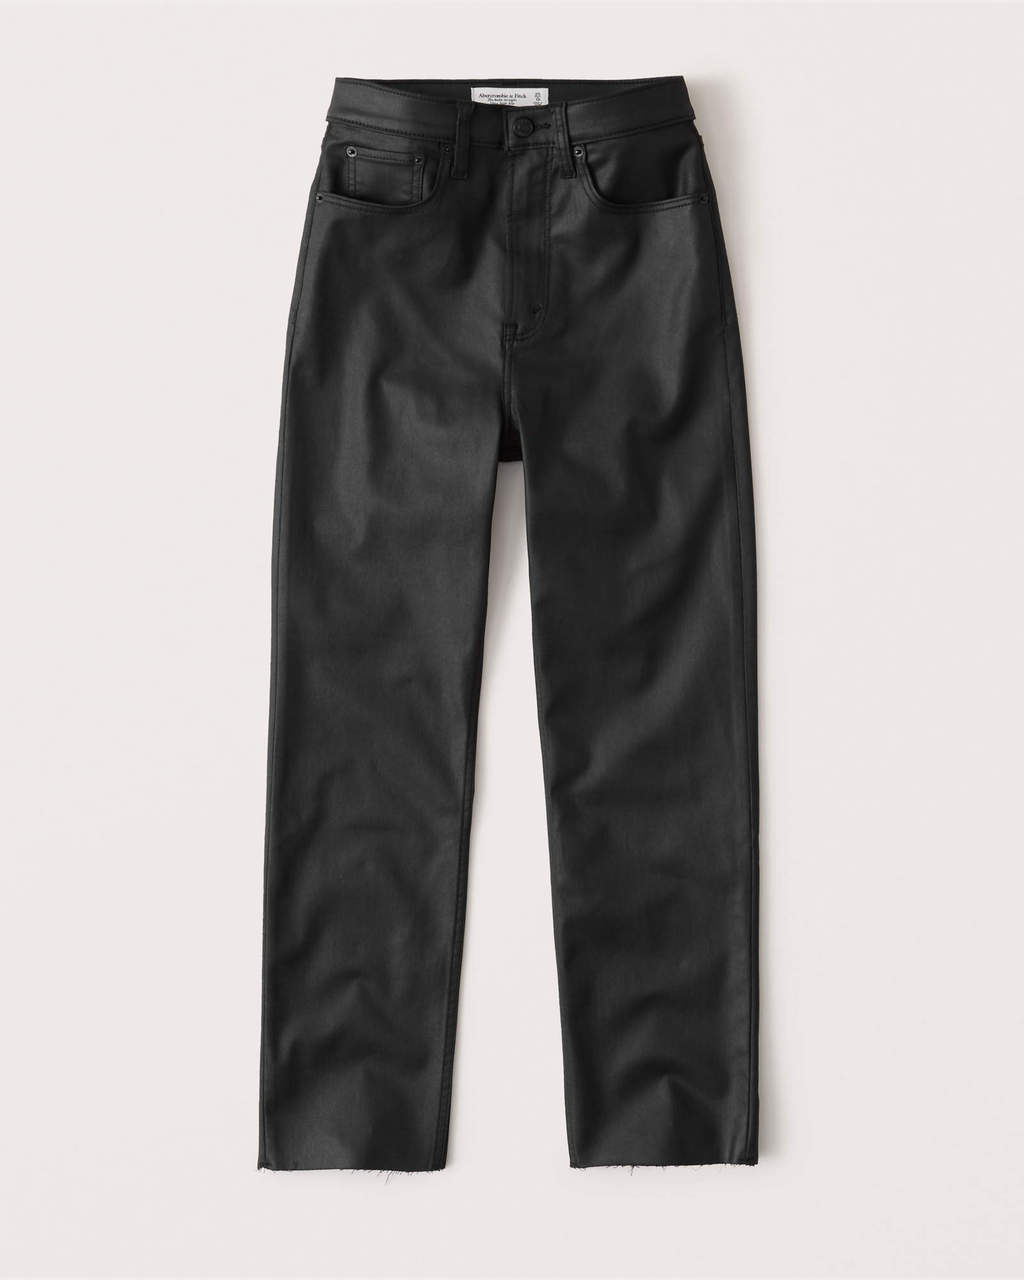 Abercrombie & Fitch Curve Love Ultra High Rise Jeans